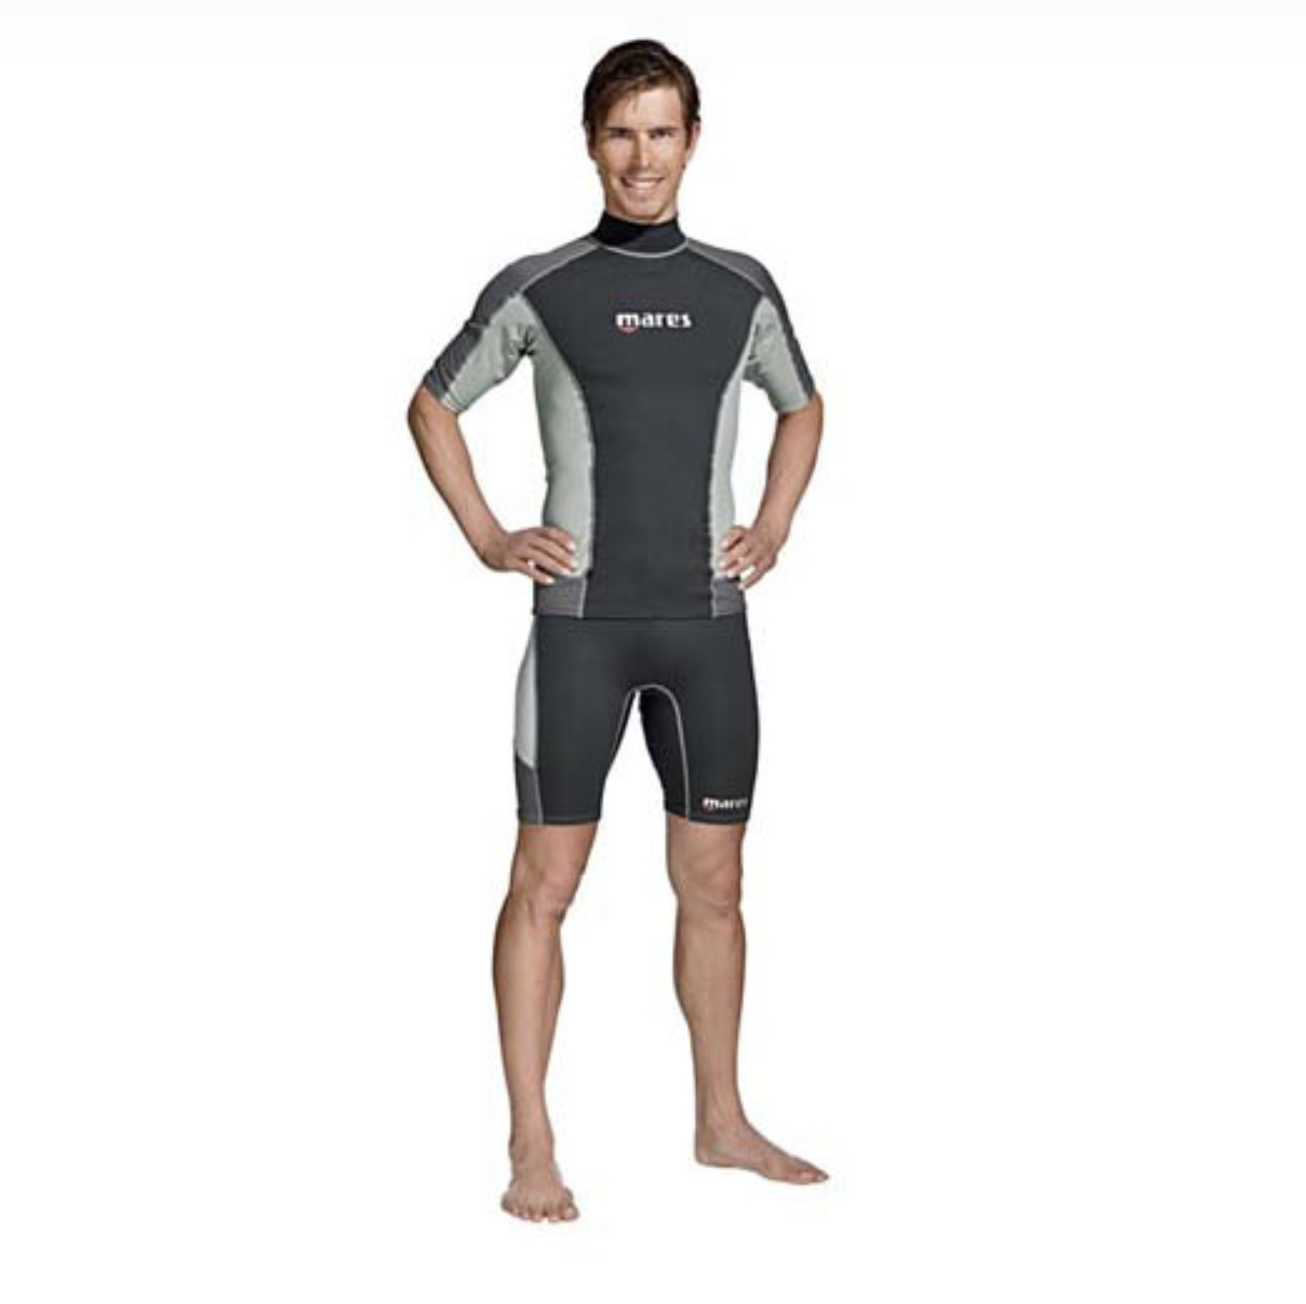 Mares Rash Guard Trilastic (Men's)